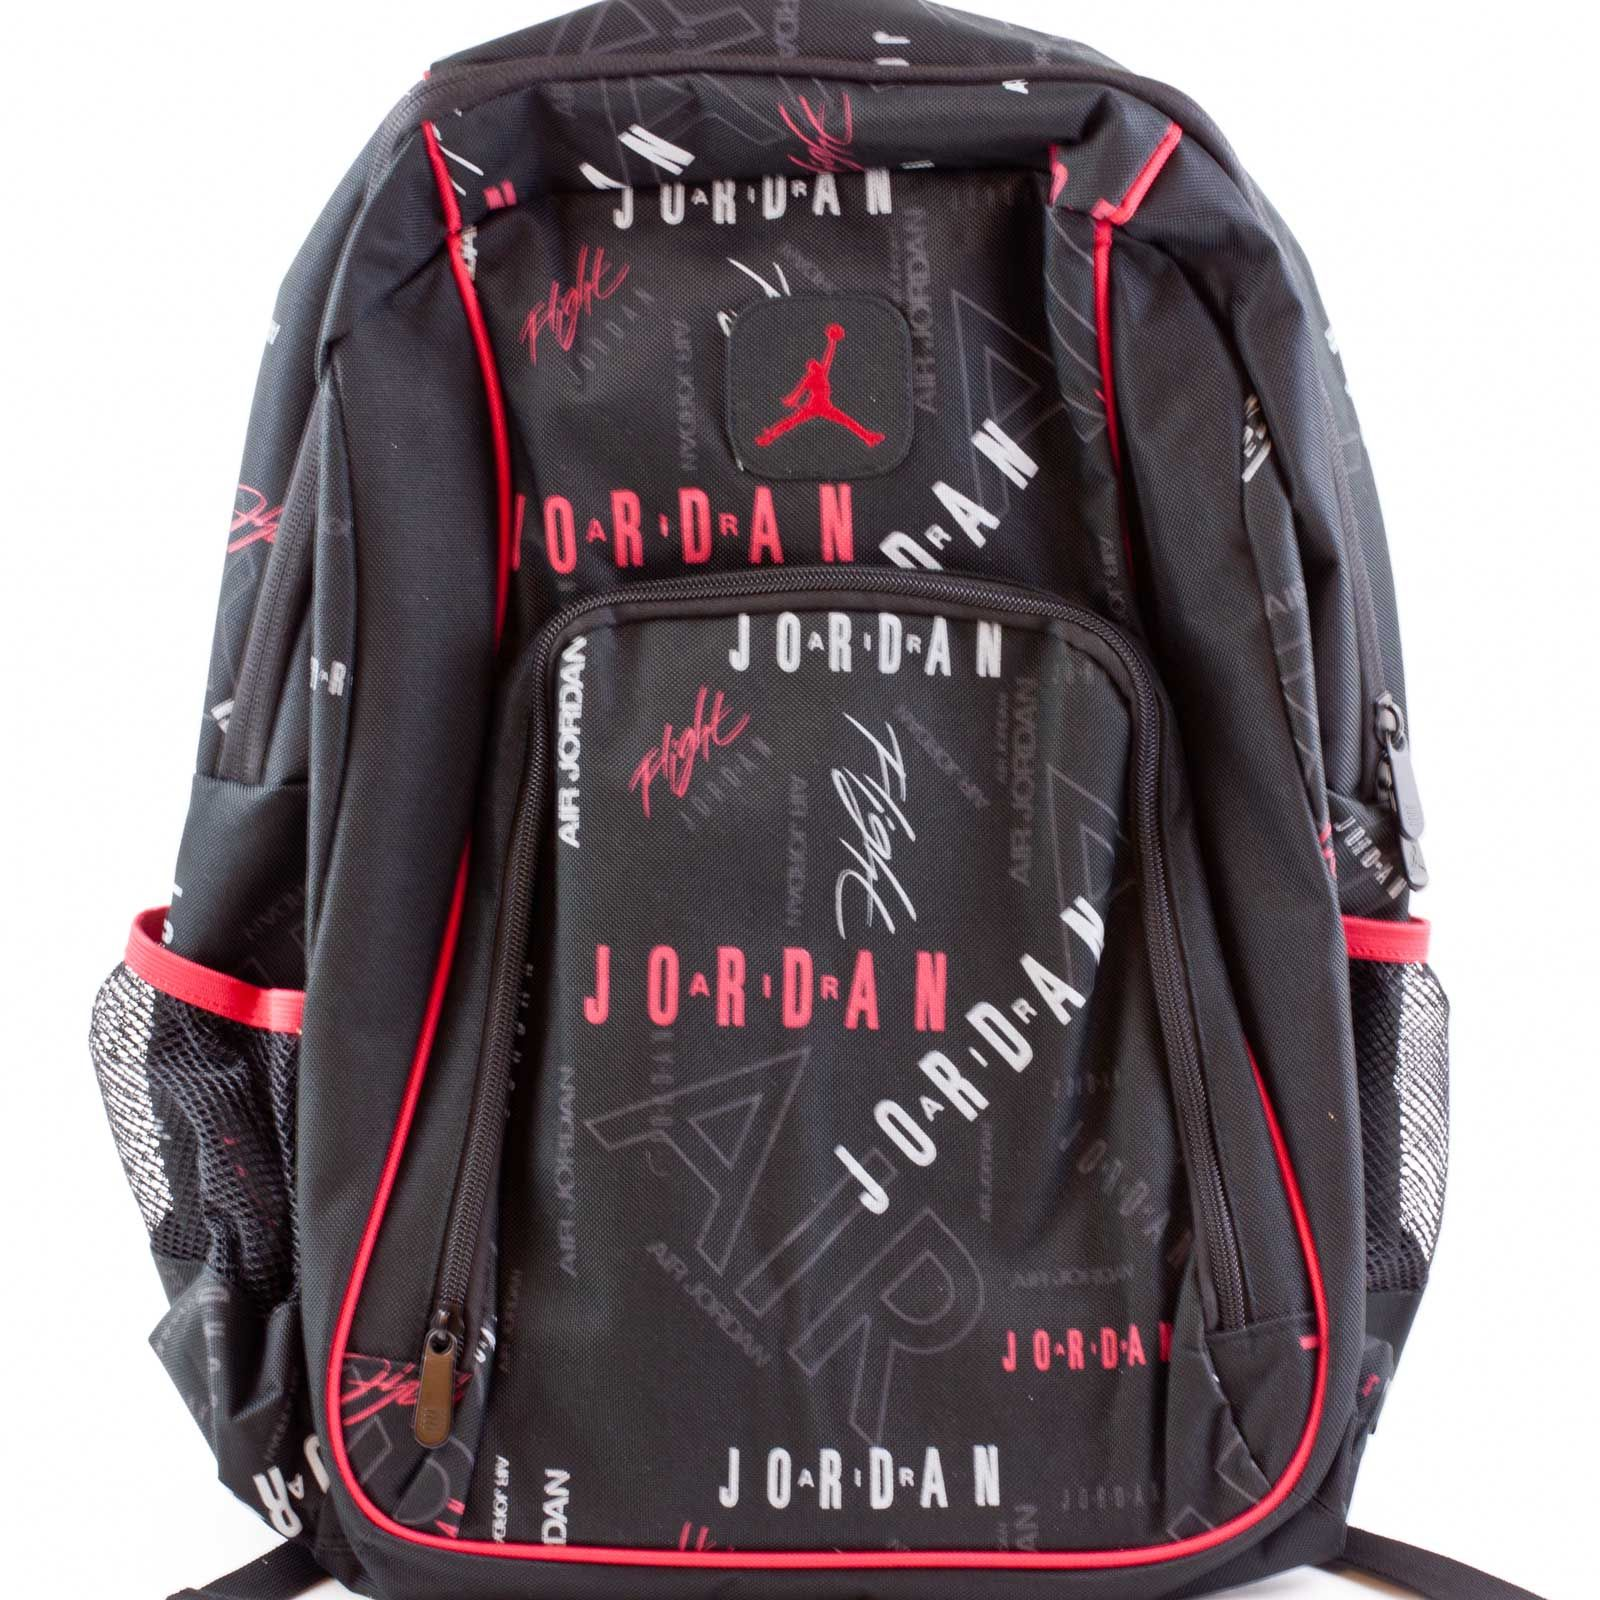 34a6527eb063 Nike Michael Jordan Jumpman Backpack Great for carrying laptops ...